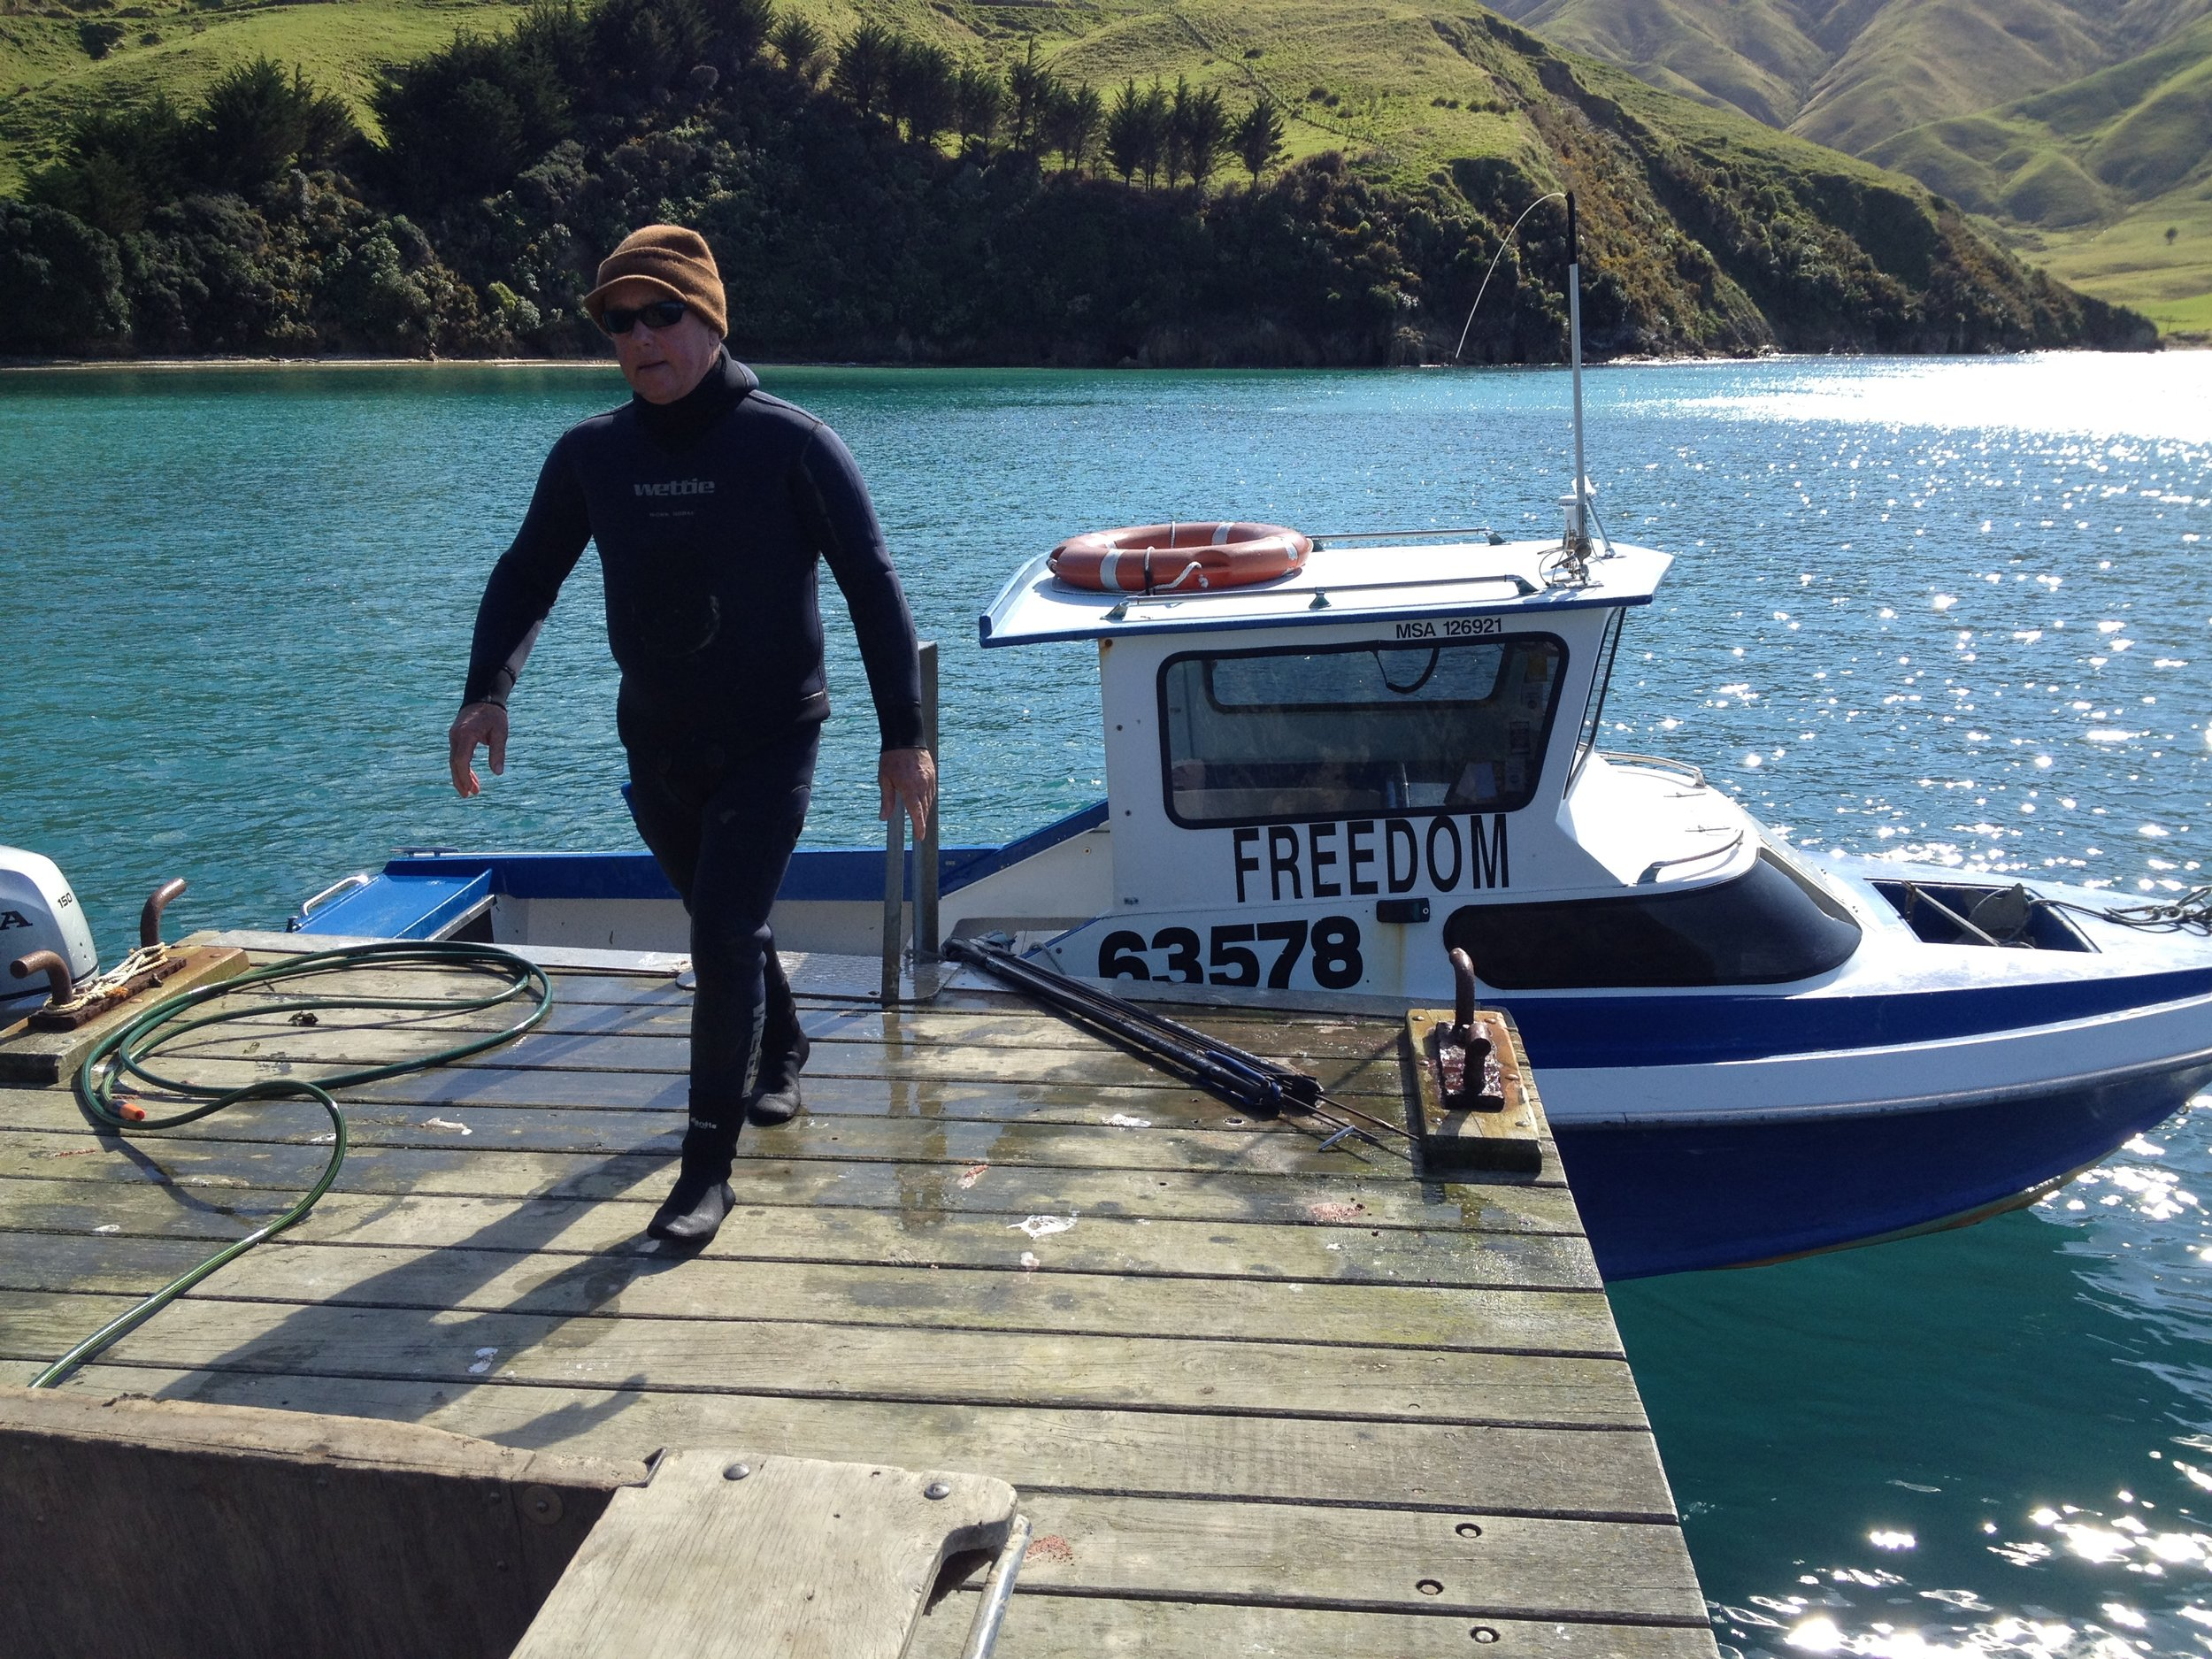 Mike Radon back from a dive, Whekenui Bay, Marlborough Sounds (image by Jacqui Gibson).